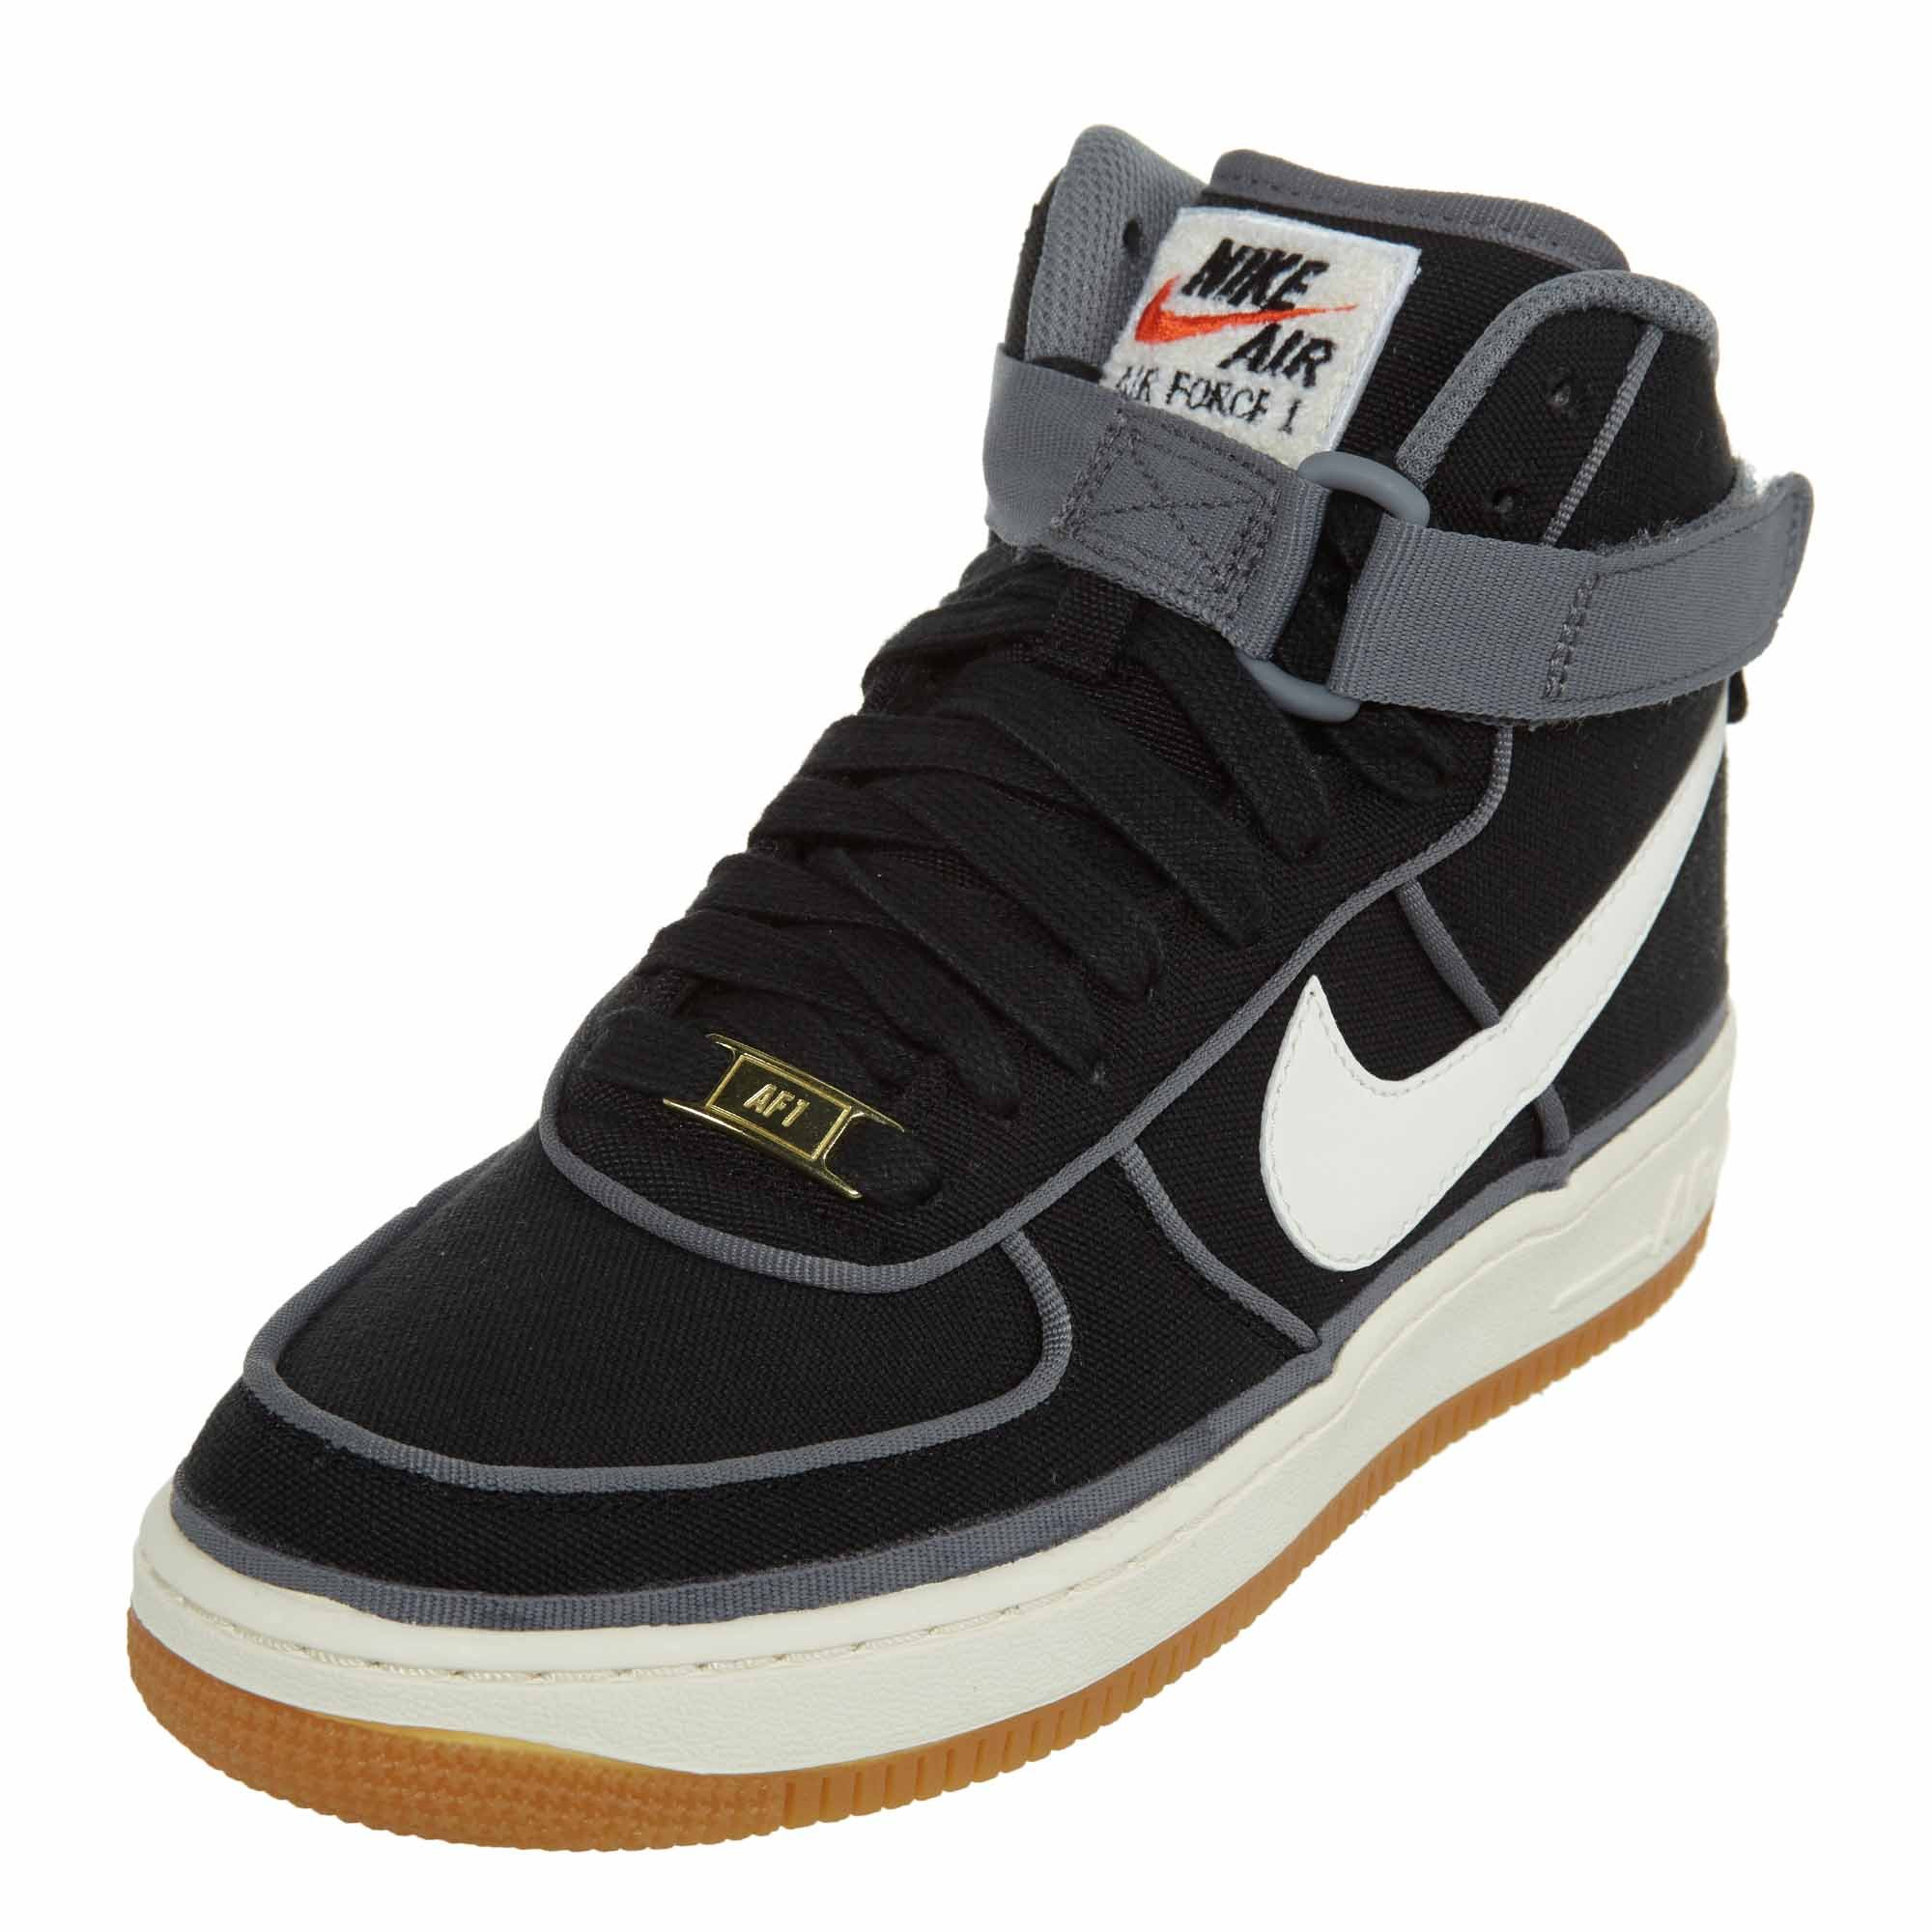 NIKE Air Force 1 High Lv8 Big Kids Style: 807617-001 Size: 4 Y US